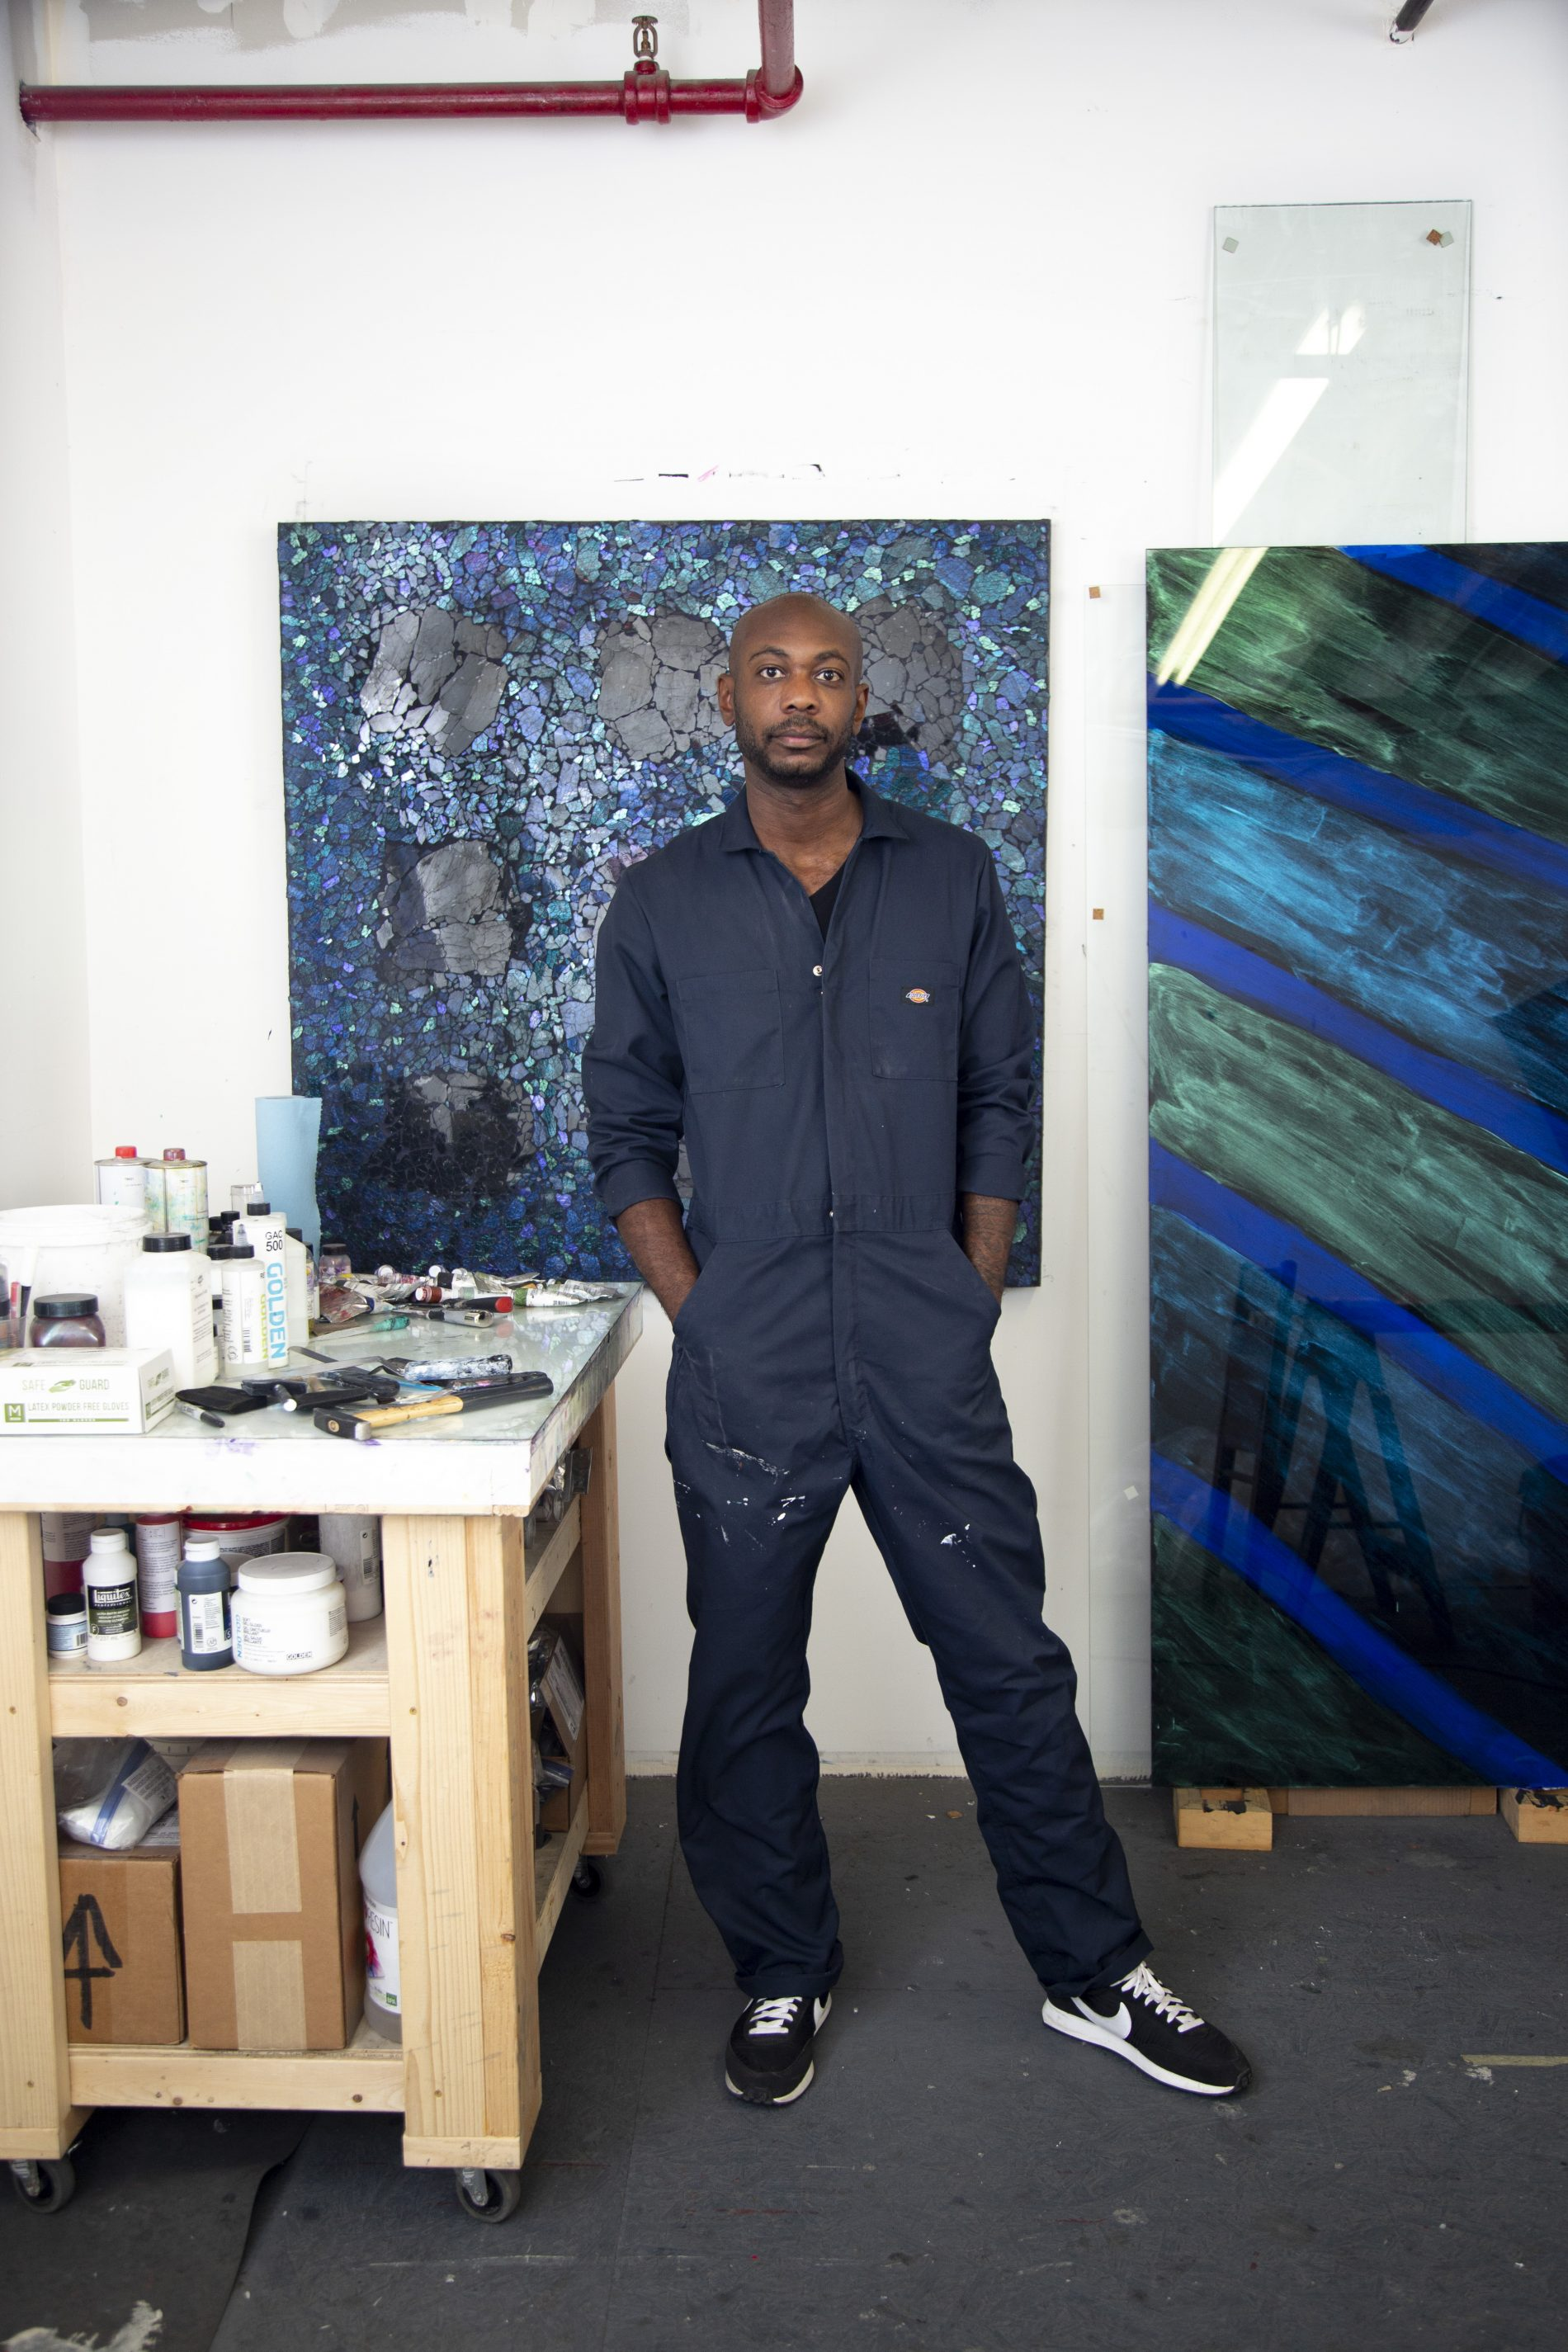 Alteronce Gumby in his studio, photo by Elizabeth Brooks, courtesy Charles Moffett gallery.